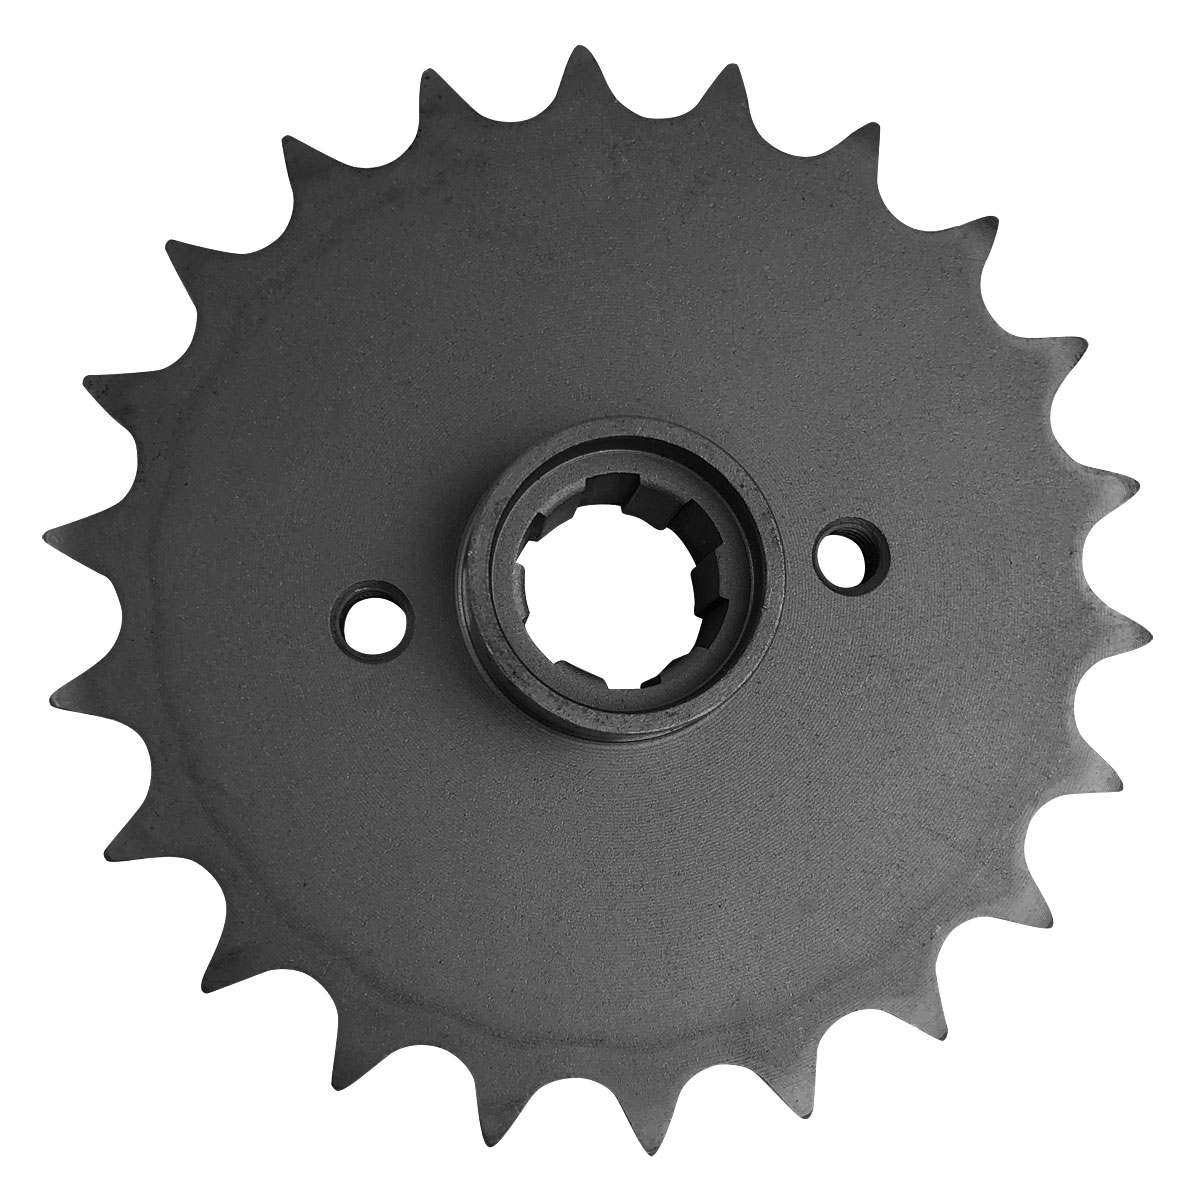 22 Tooth Heavy-Duty Transmission Sprocket